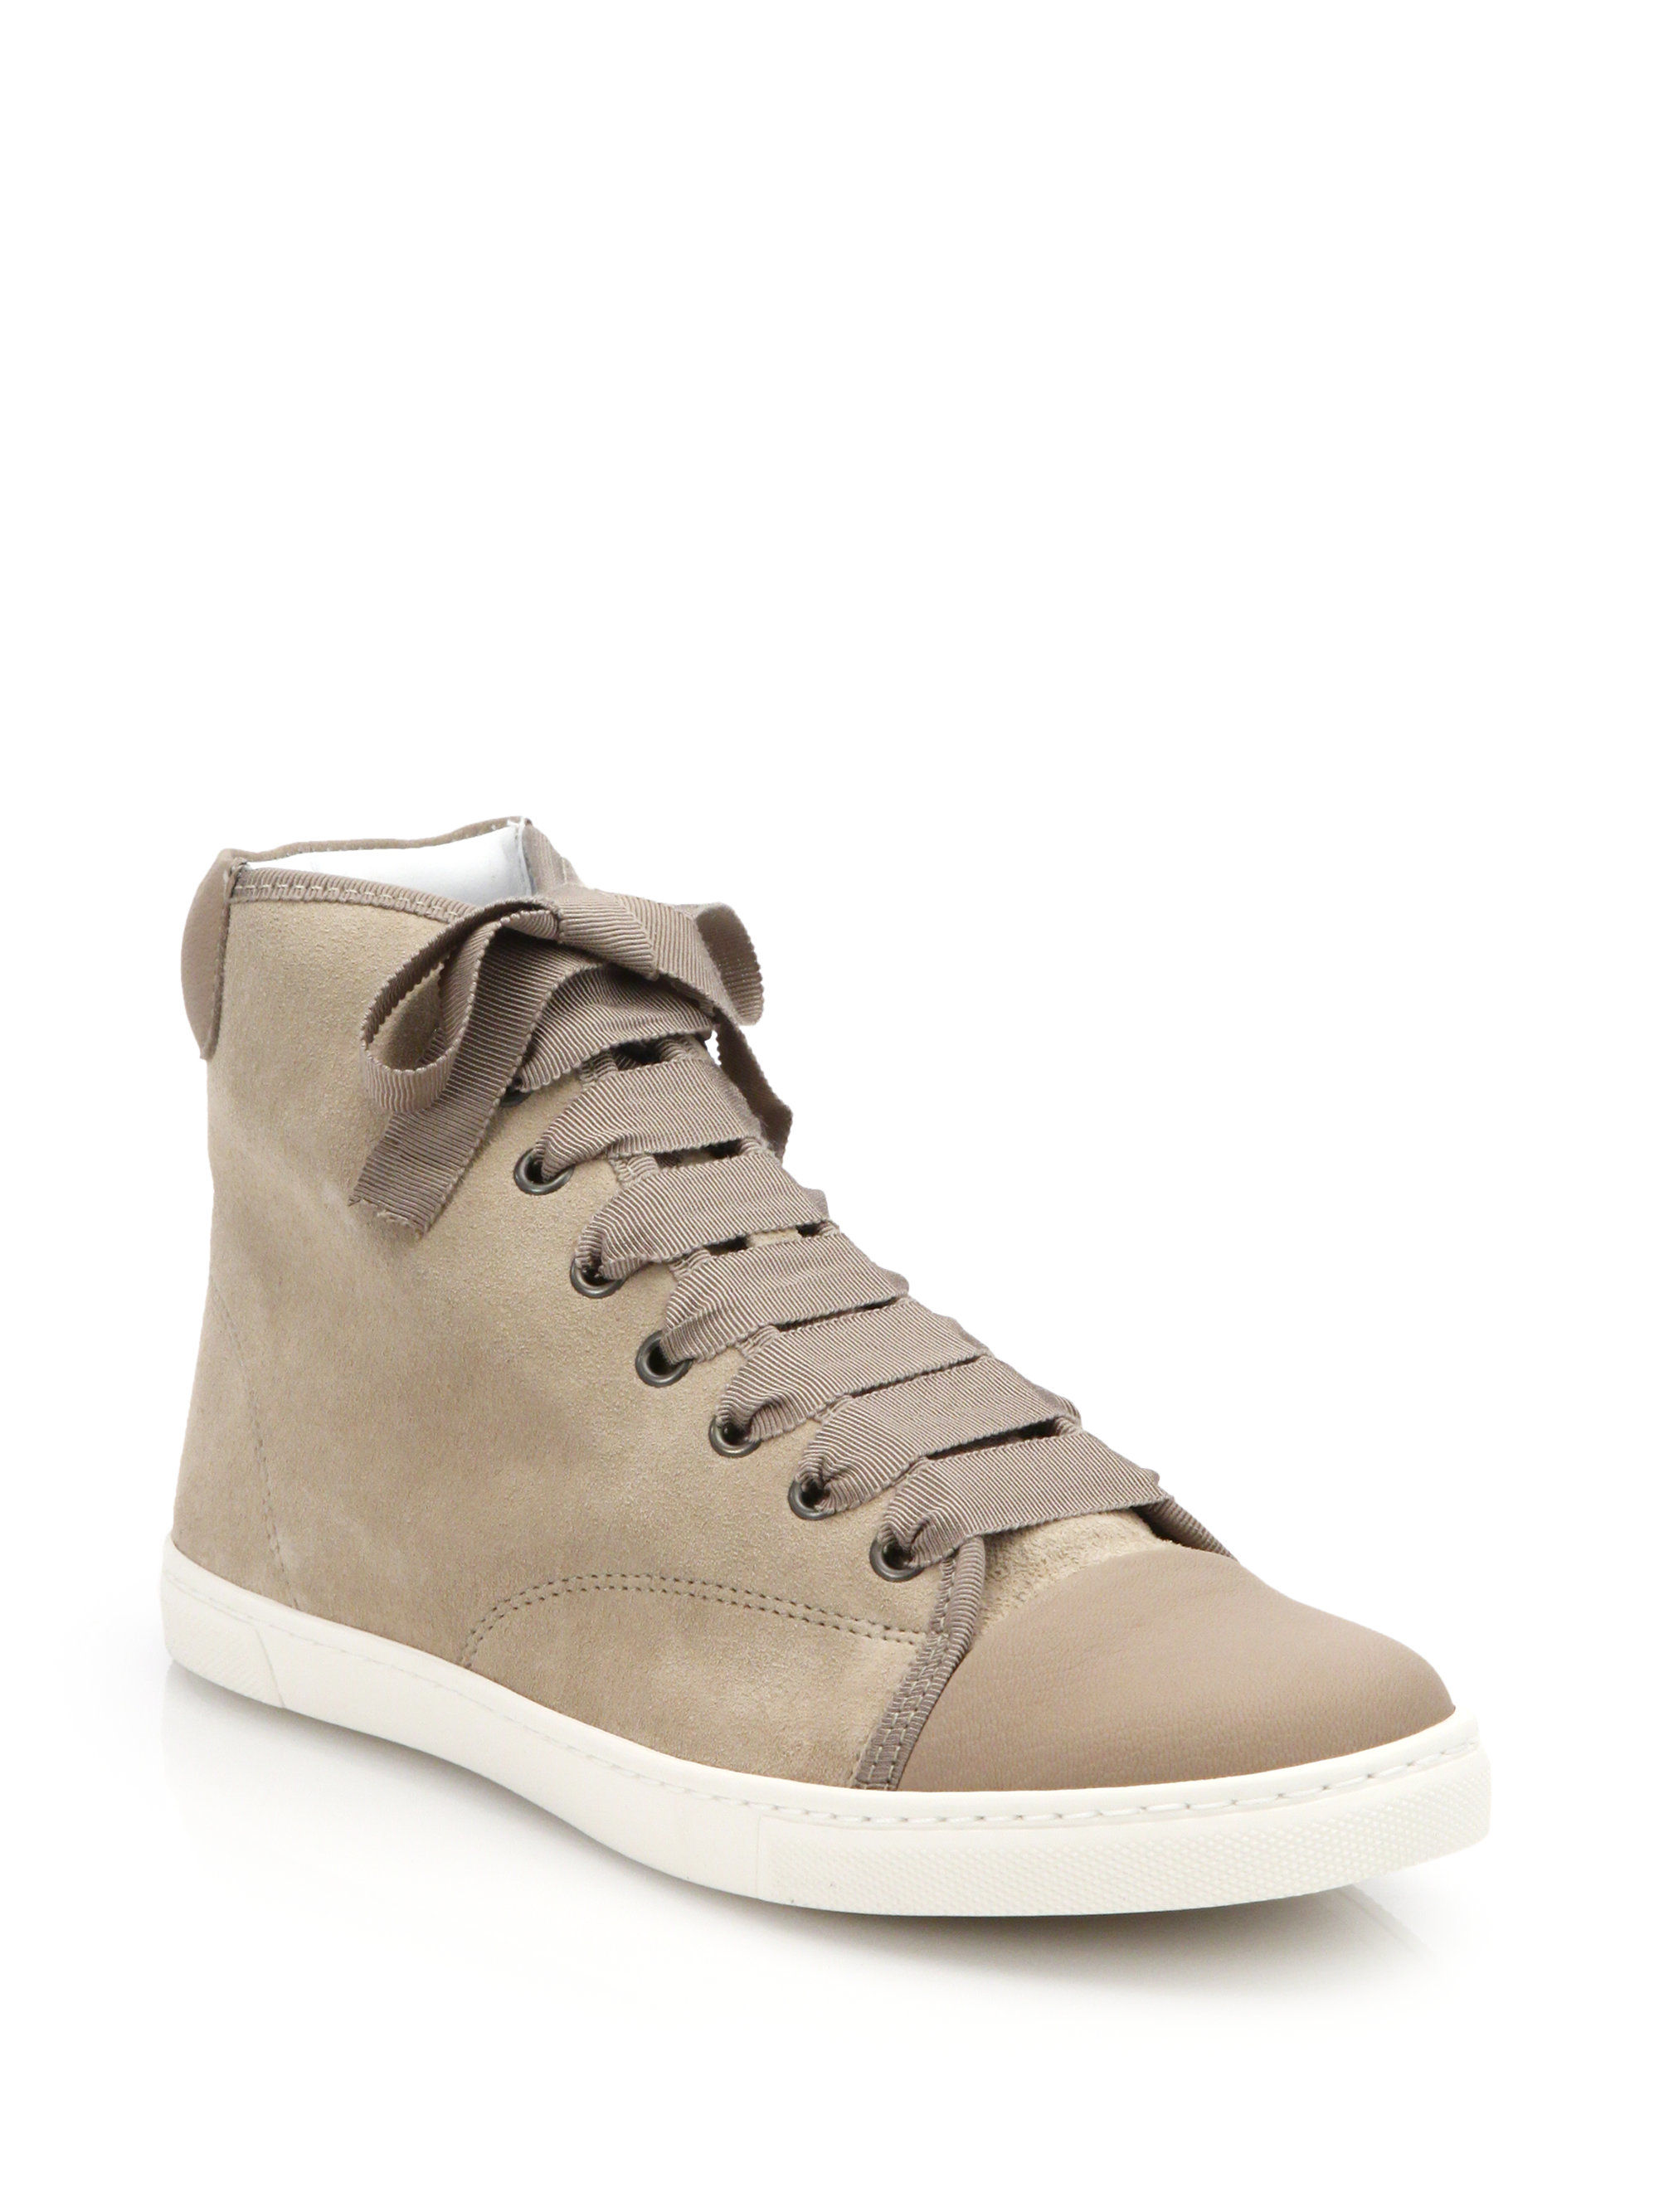 Lyst Lanvin Suede High Top Sneakers In Natural